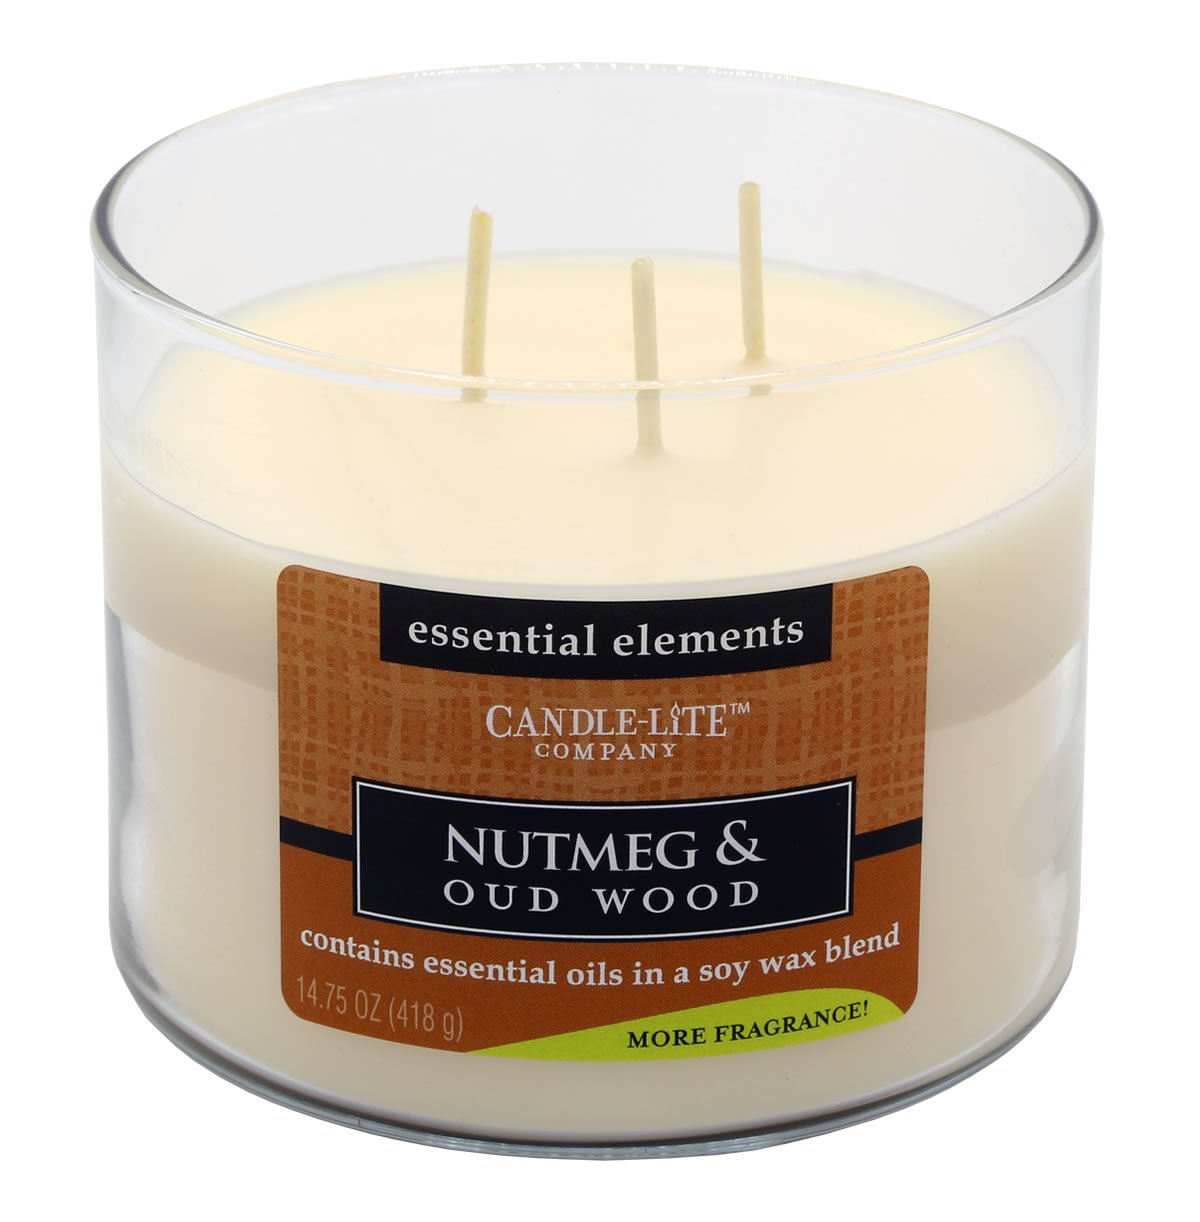 Candle Lite–3stoppino candela profumata in barattolo di vetro, Noce moscata & Oud Wood 418G, Bianco, 11.5x 11.5x 9cm Candle-liteTM 1542322